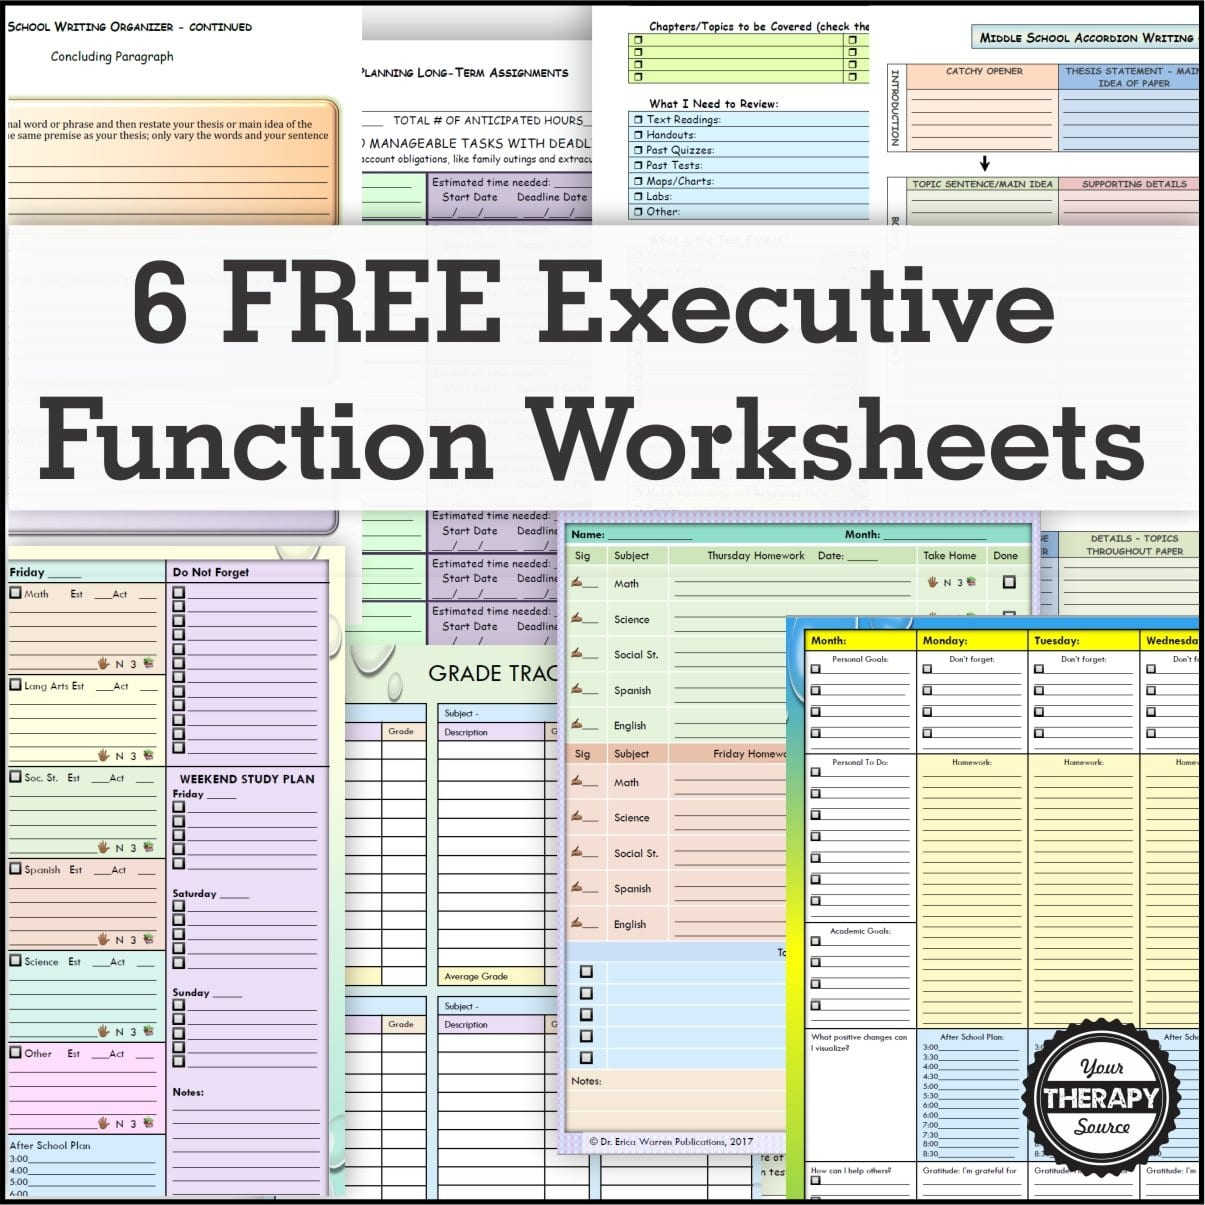 6 Free Executive Functioning Activity Worksheets  Your Therapy Source Within Executive Function Worksheets For Adults